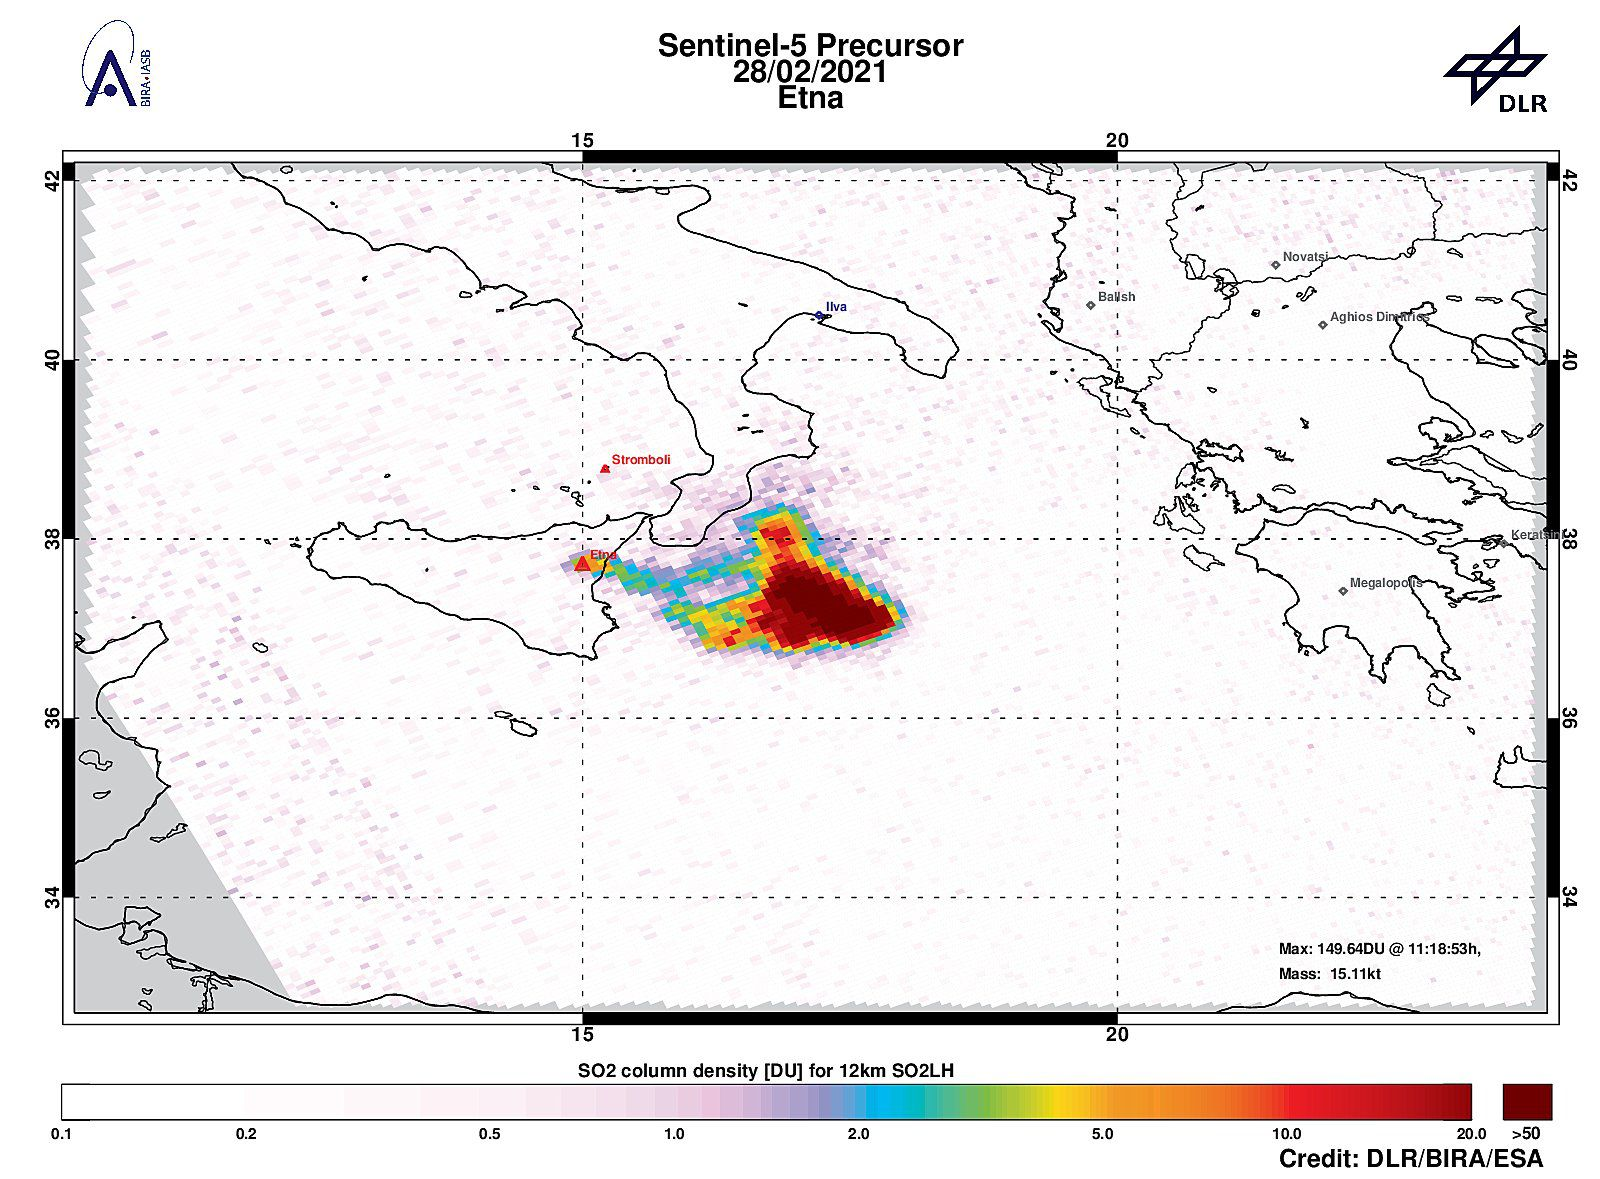 Etna - sulfur dioxide anomaly on 28,02,2021, with 149.02DU of SO2 at an altitude of ~ 11km. Estimated mass within 300 km of 15.1ktons. - Doc. Tropomi / DLR-BIRA-ESA